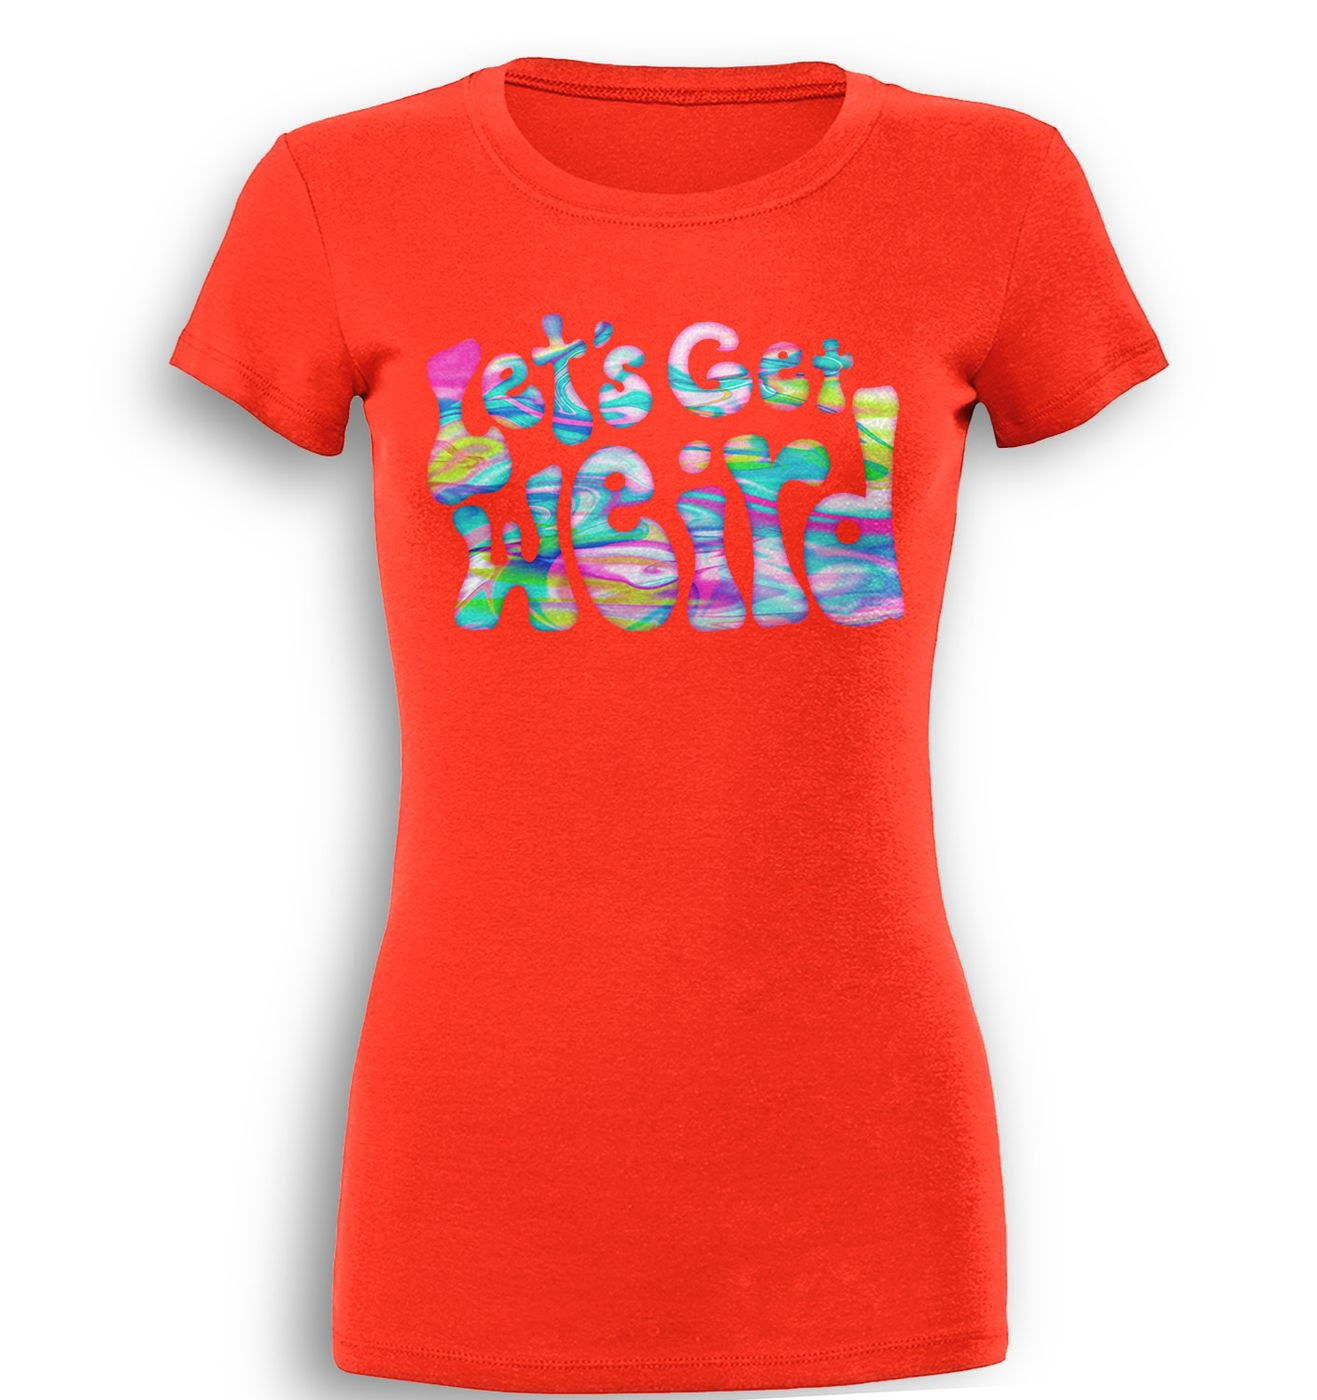 Let's Get Weird premium women's t-shirt by Something Geeky